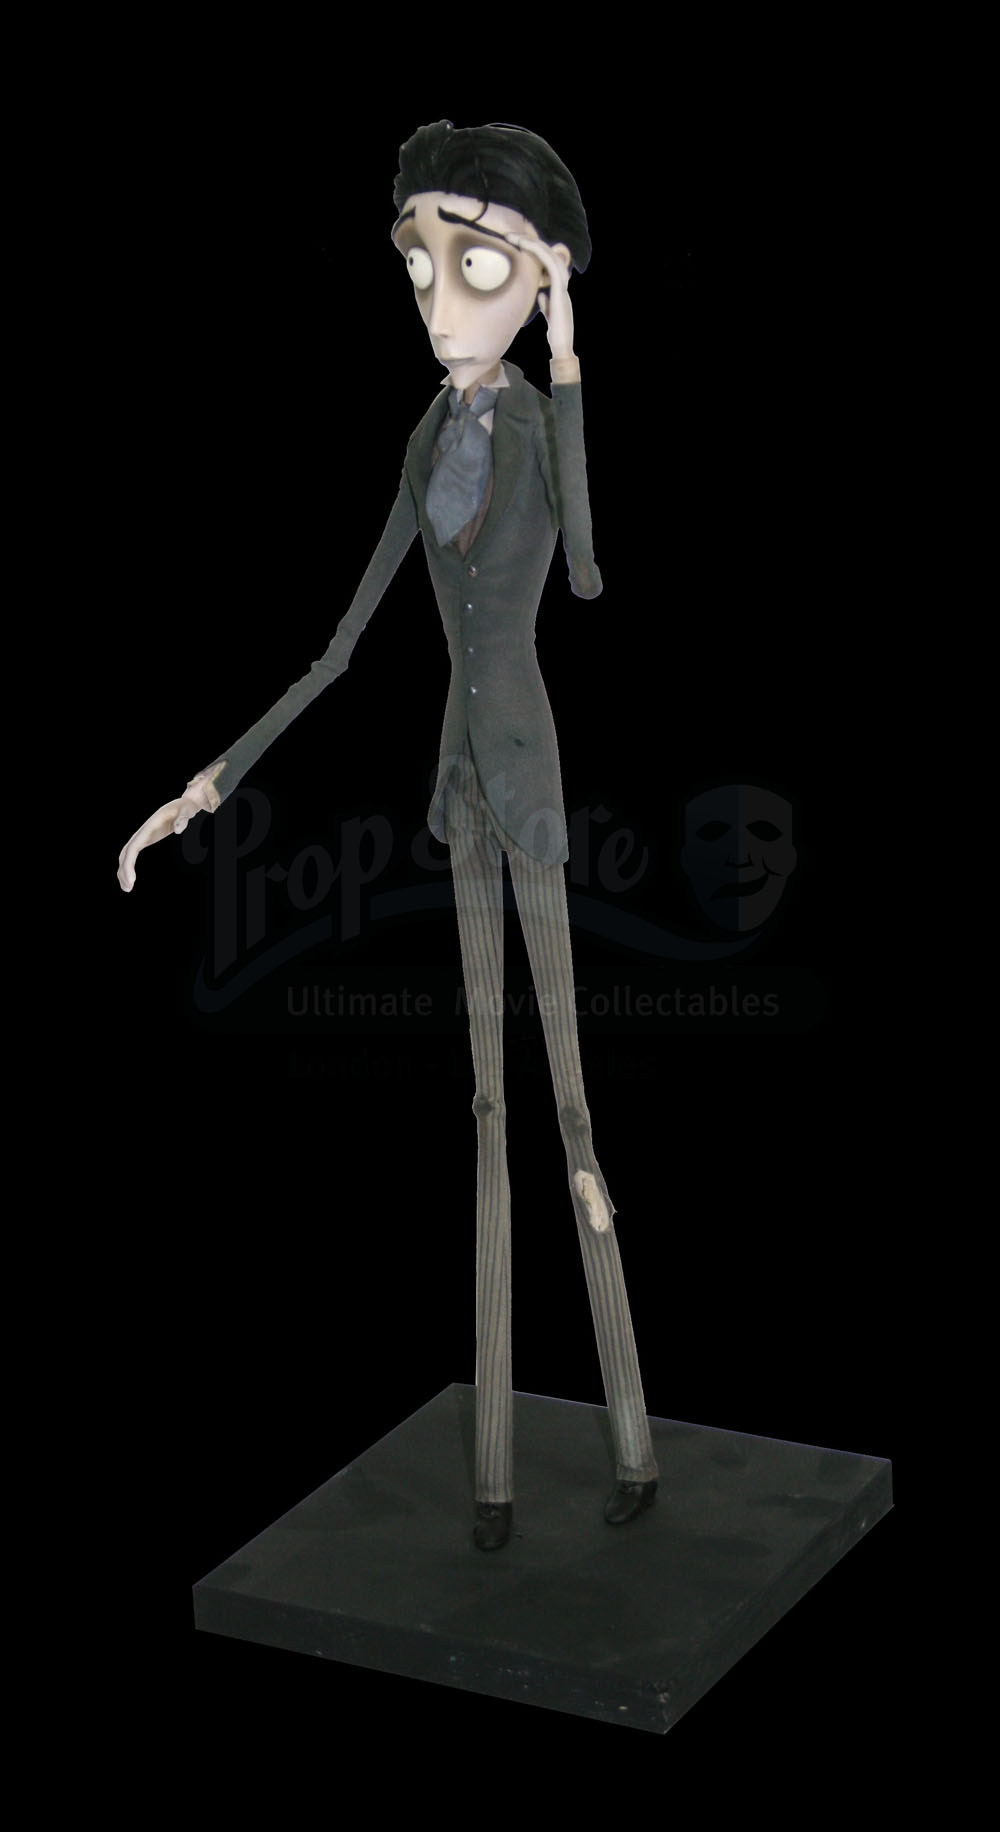 Corpse Bride Western Animation - TV Tropes